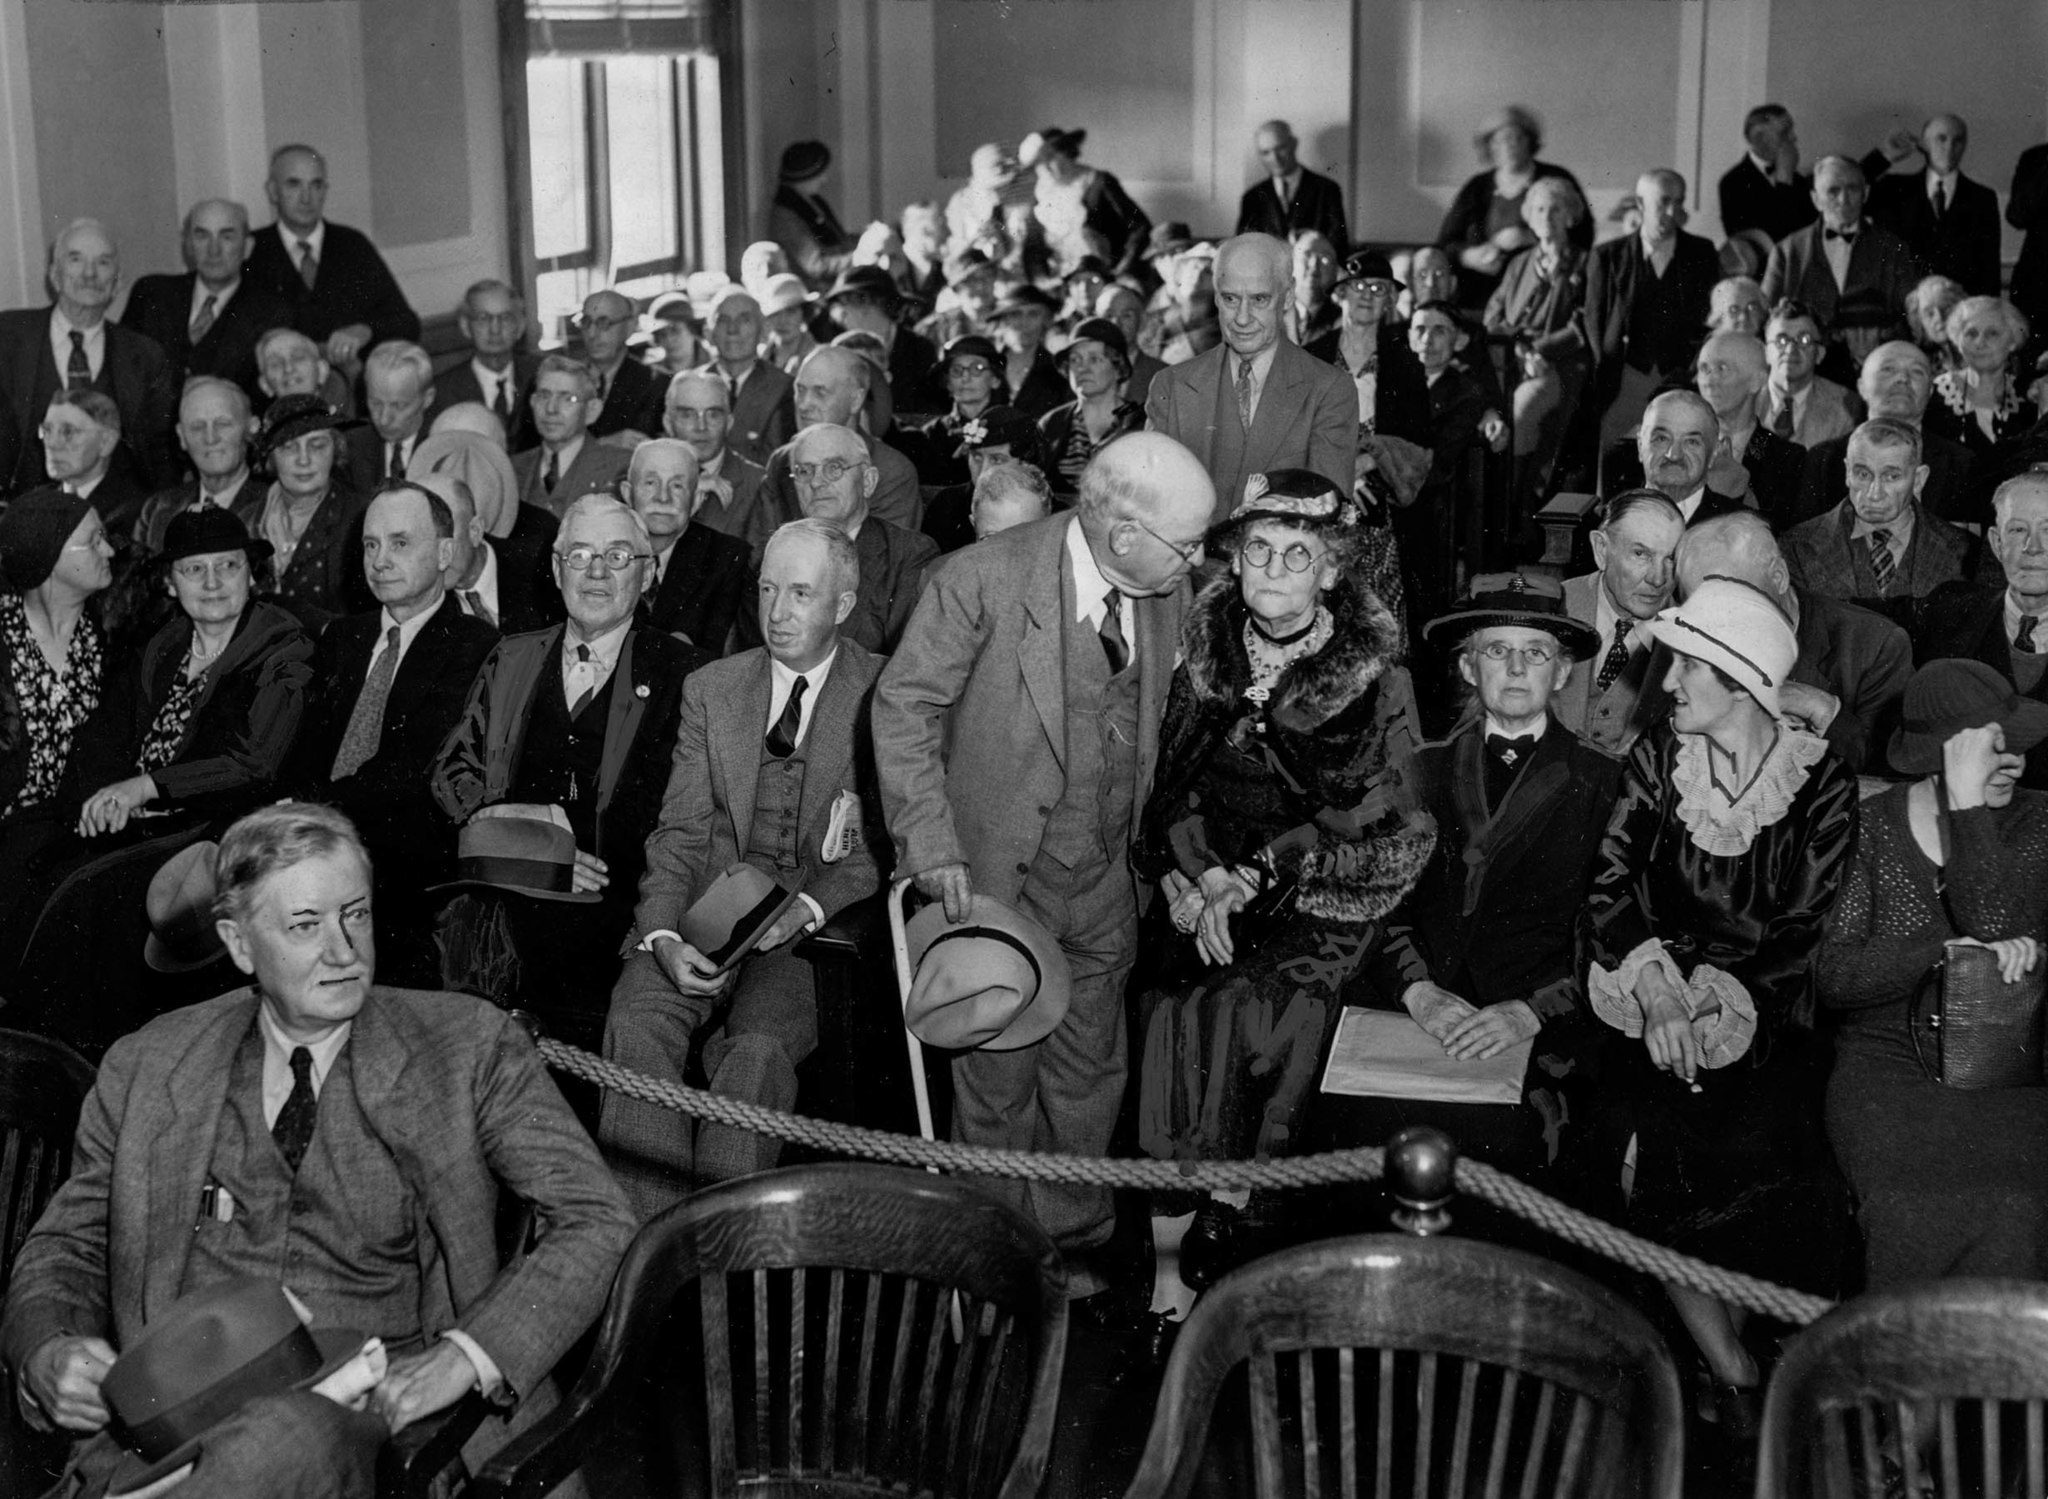 April 28, 1936: Spectators at Congressional hearing on Dr. Francis Townsend and his Old-Age Revolvin